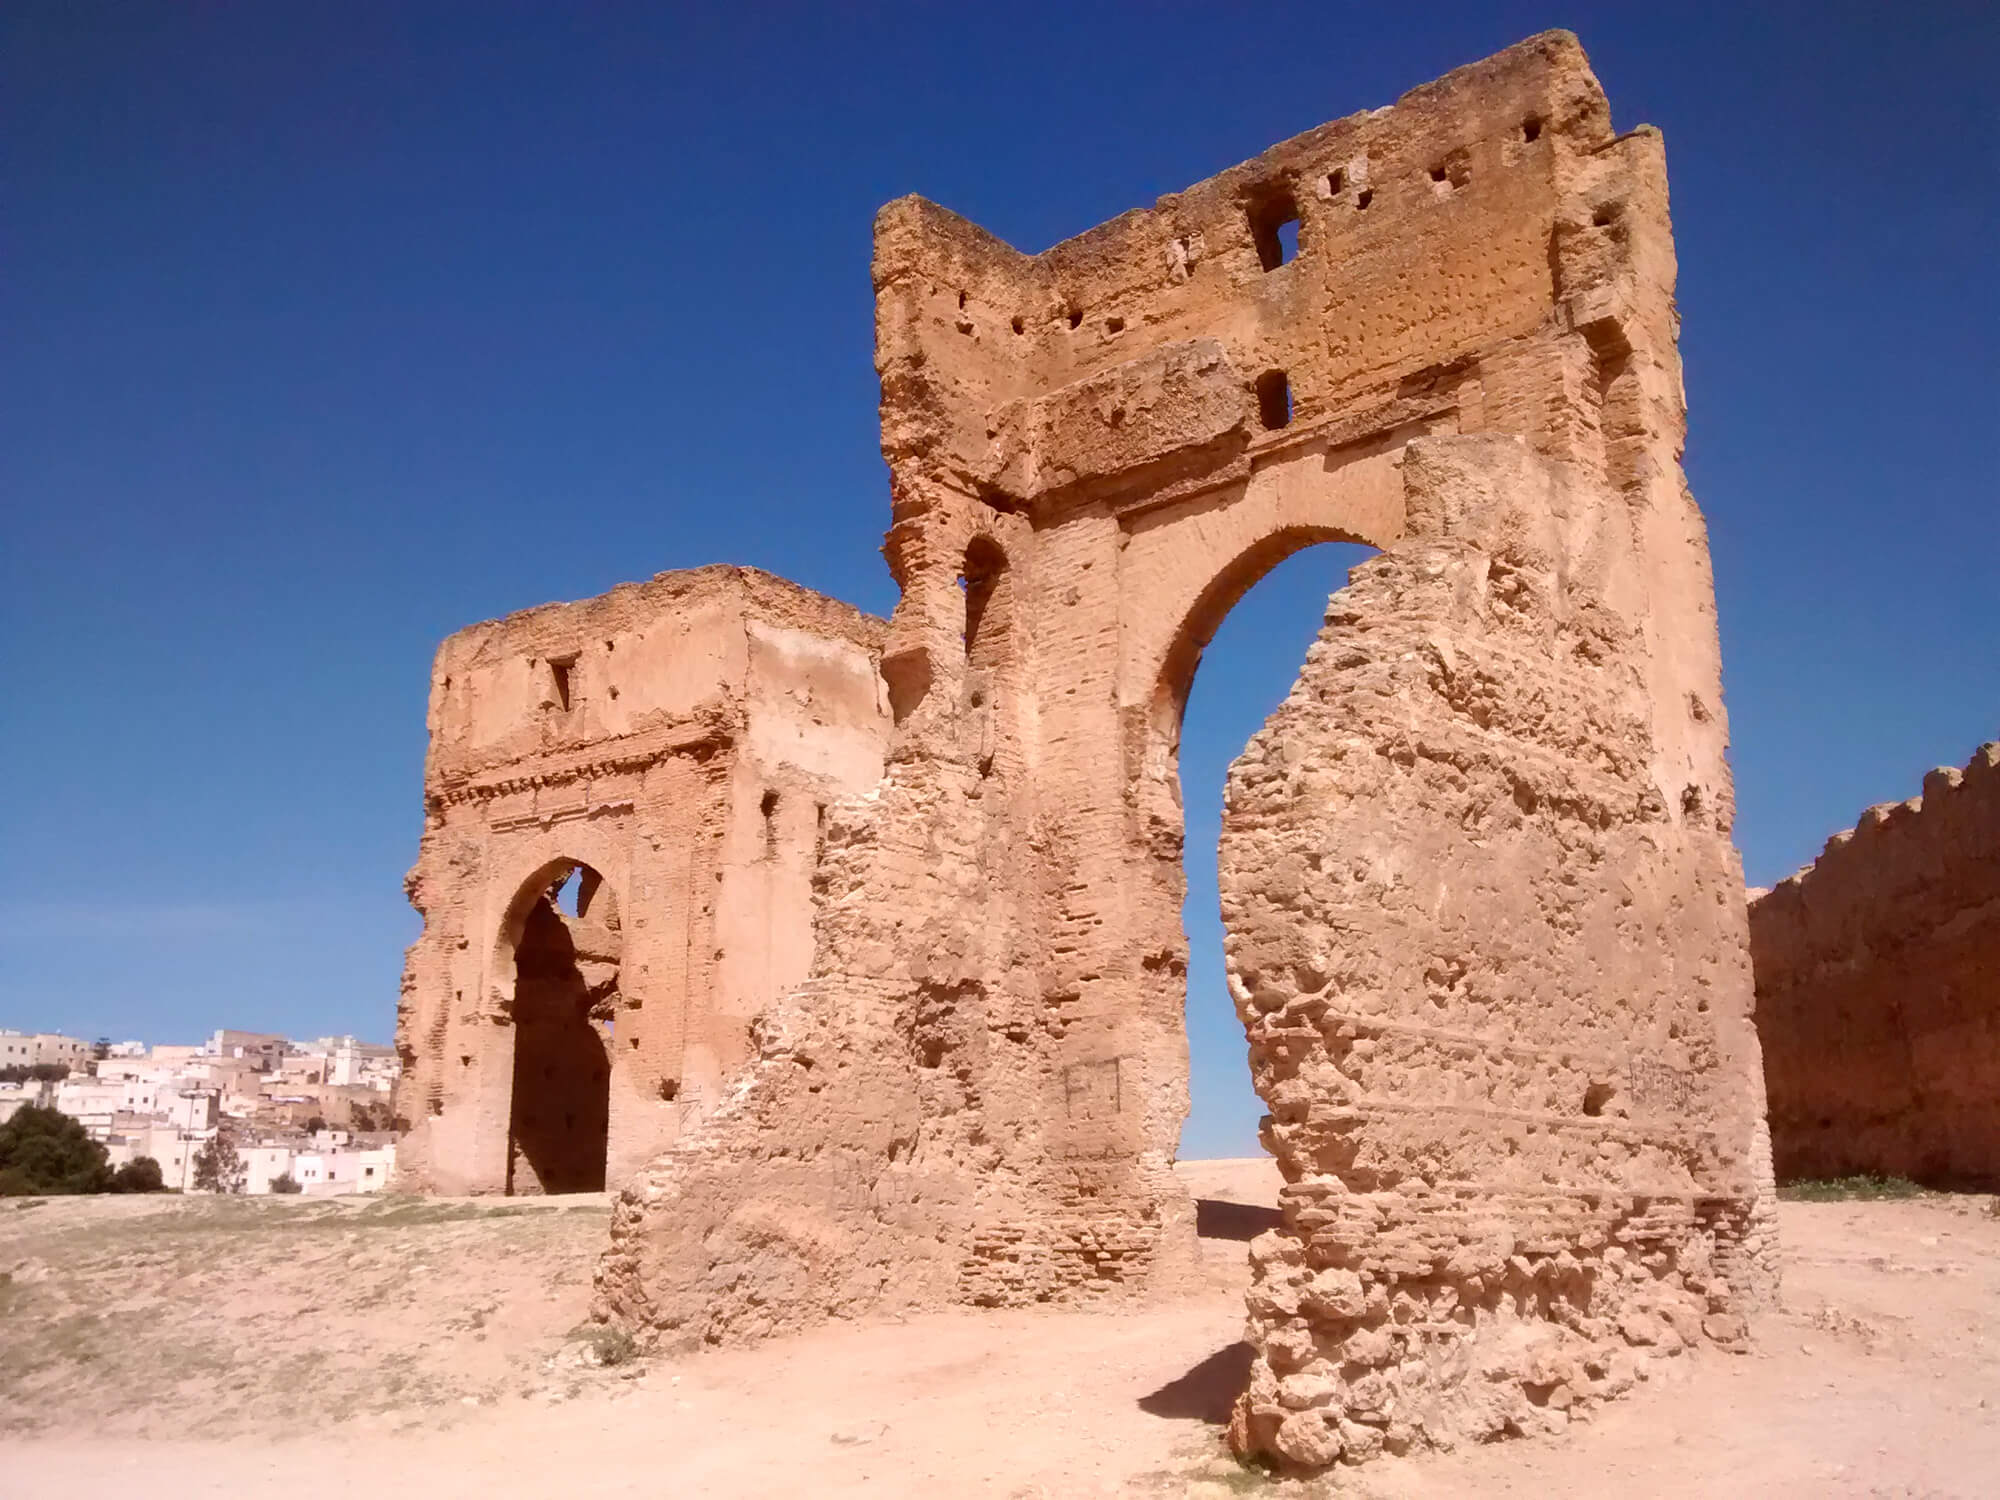 Sahara Desert Tour - What To Do and See in Fez - Marinid Tombs